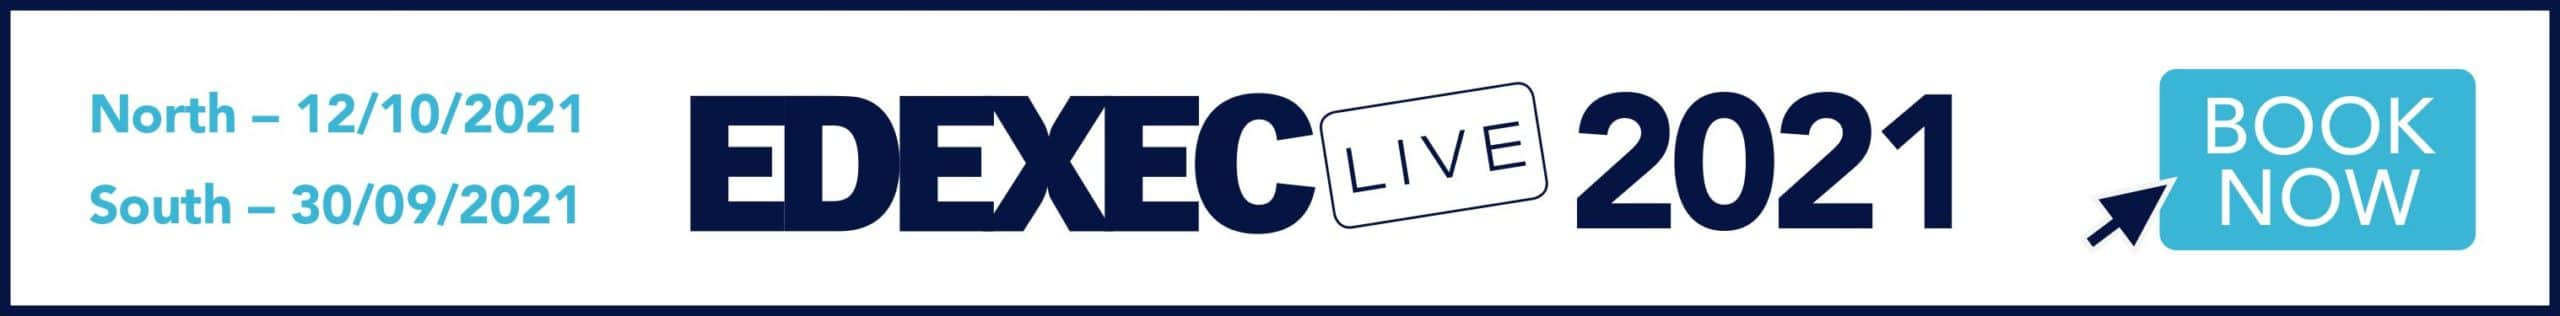 Book now for Edexec Live - North 12/10/21, South 30/09/21